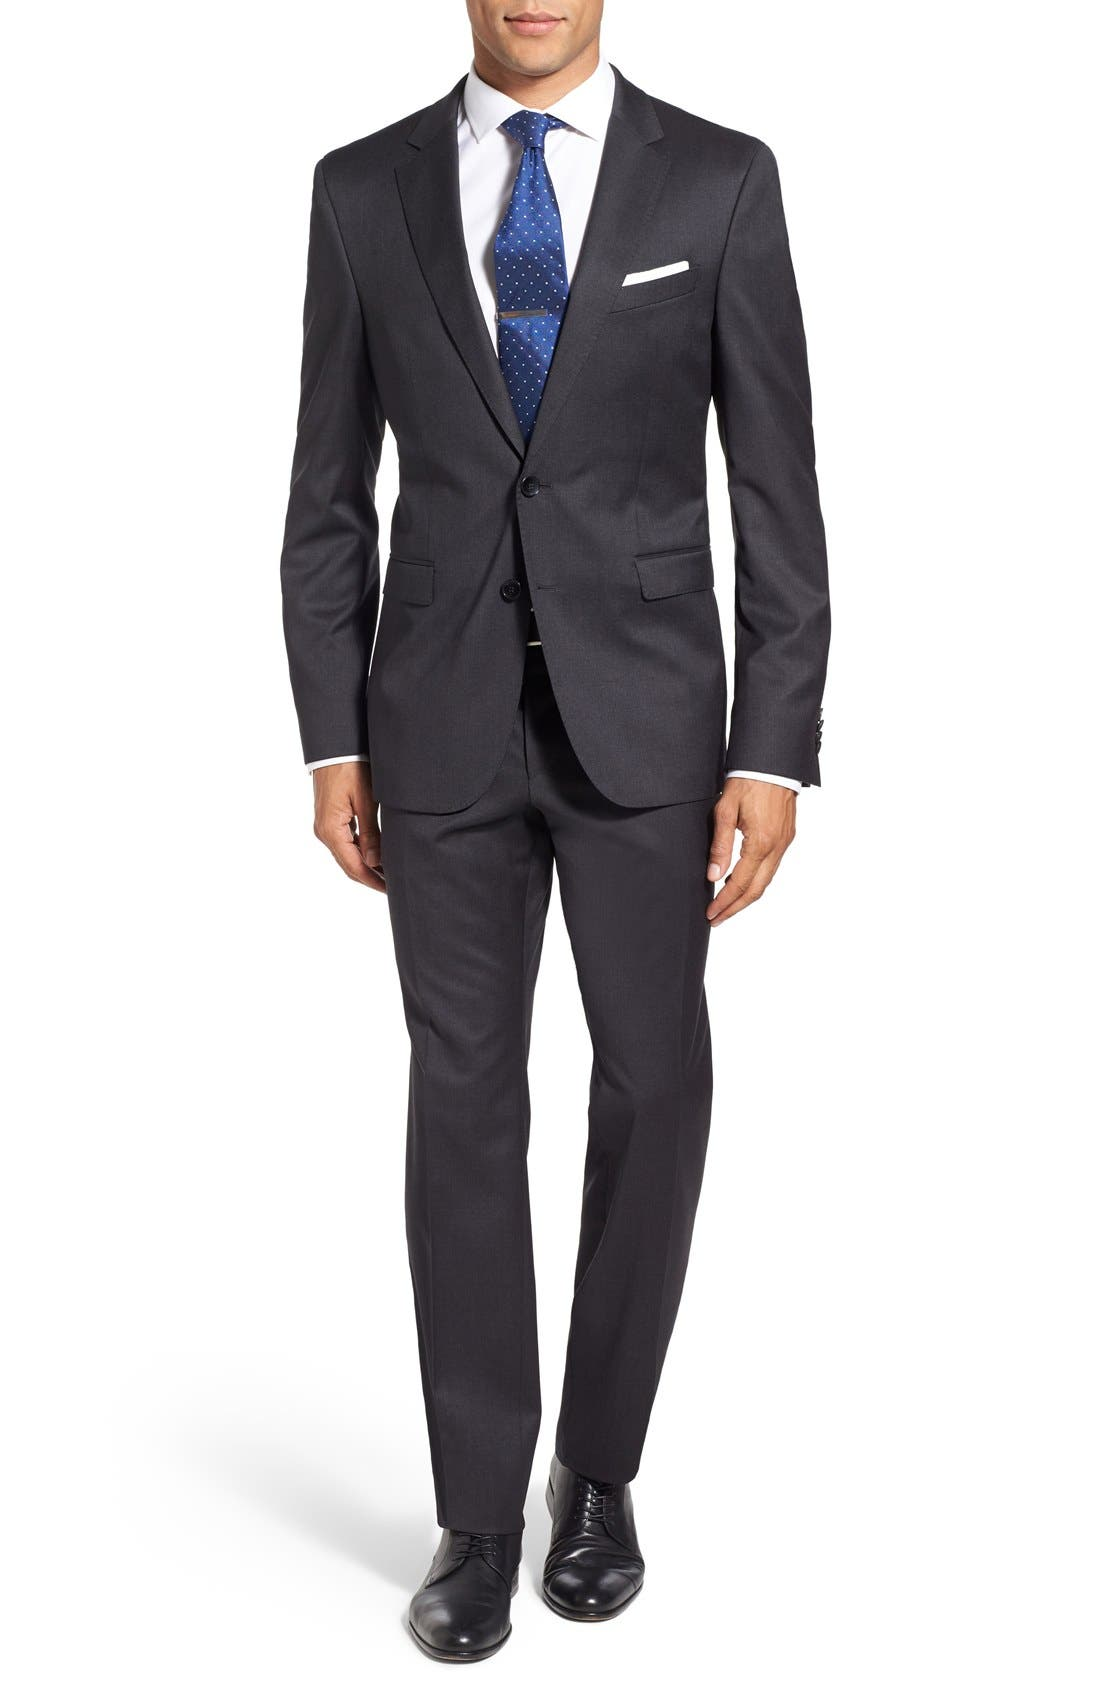 Alternate Image 1 Selected - BOSS 'Ryan/Win' Extra Trim Fit Solid Wool Suit